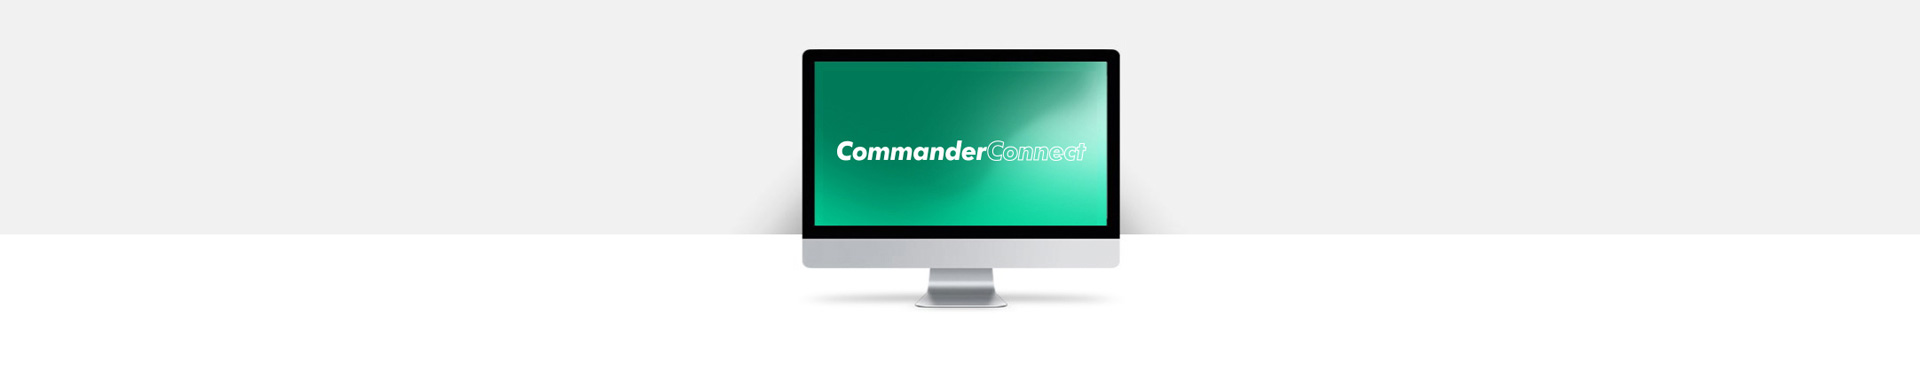 commander connect software